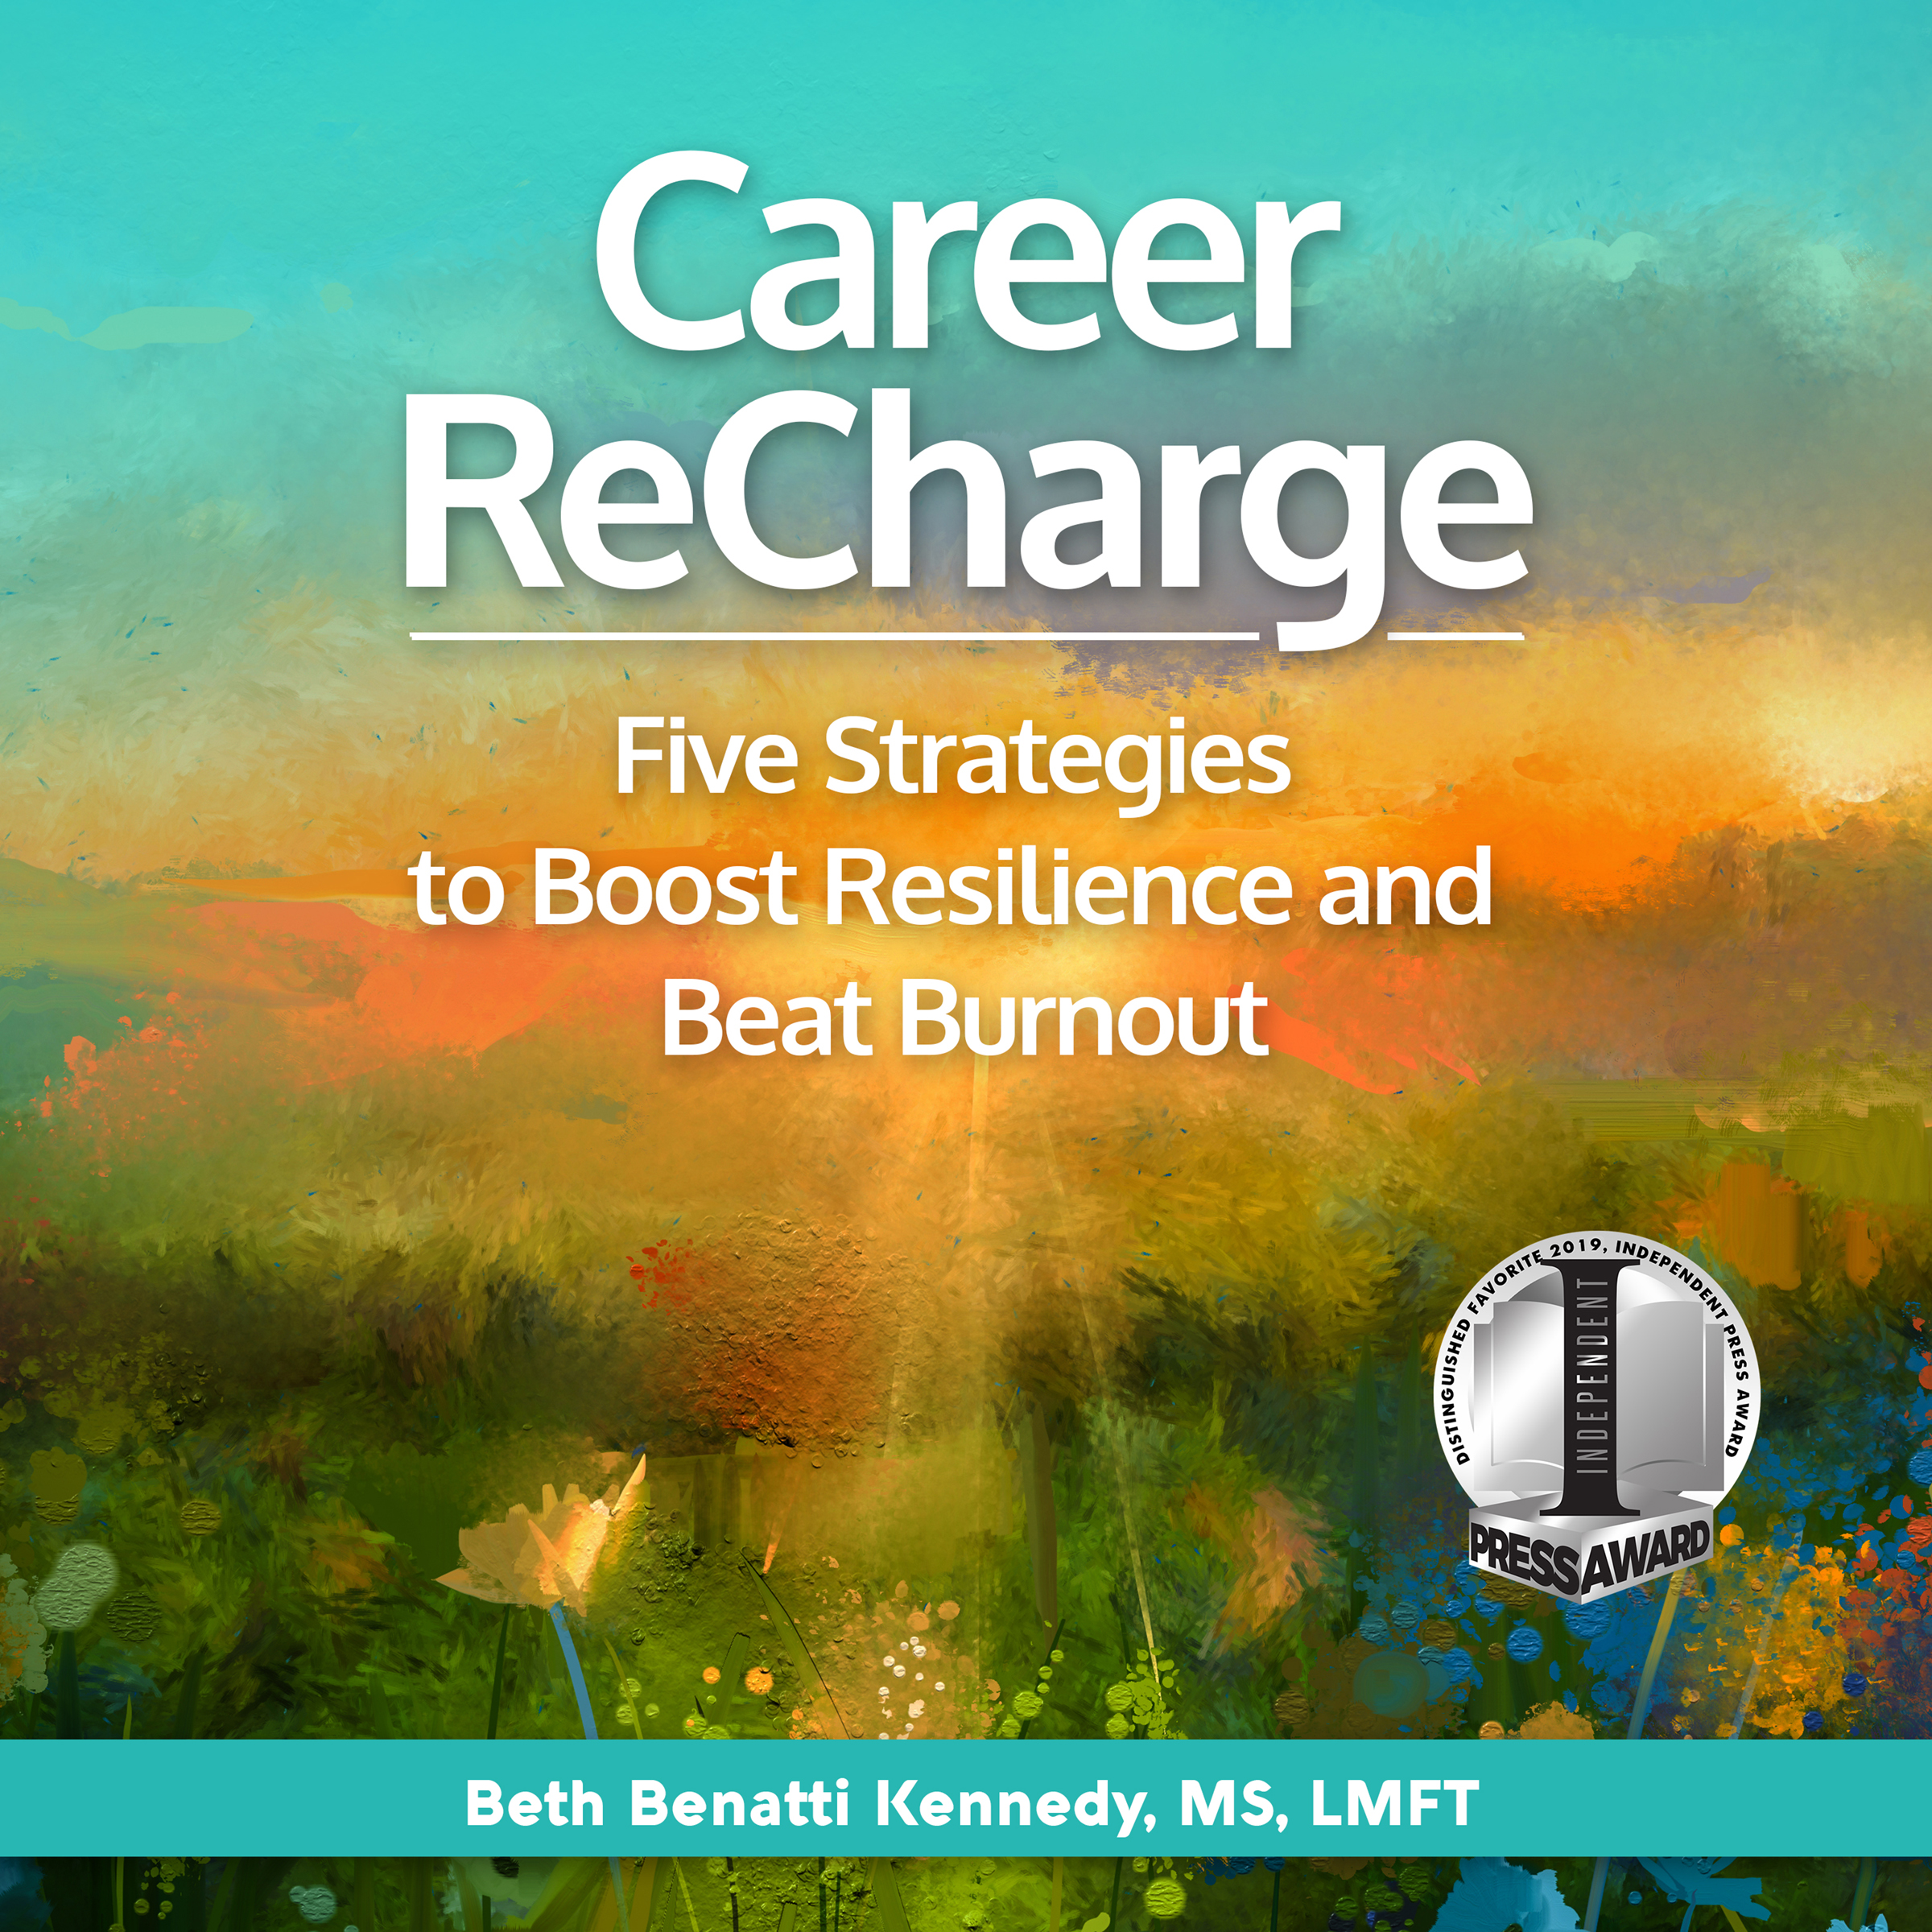 Career ReCharge cover image